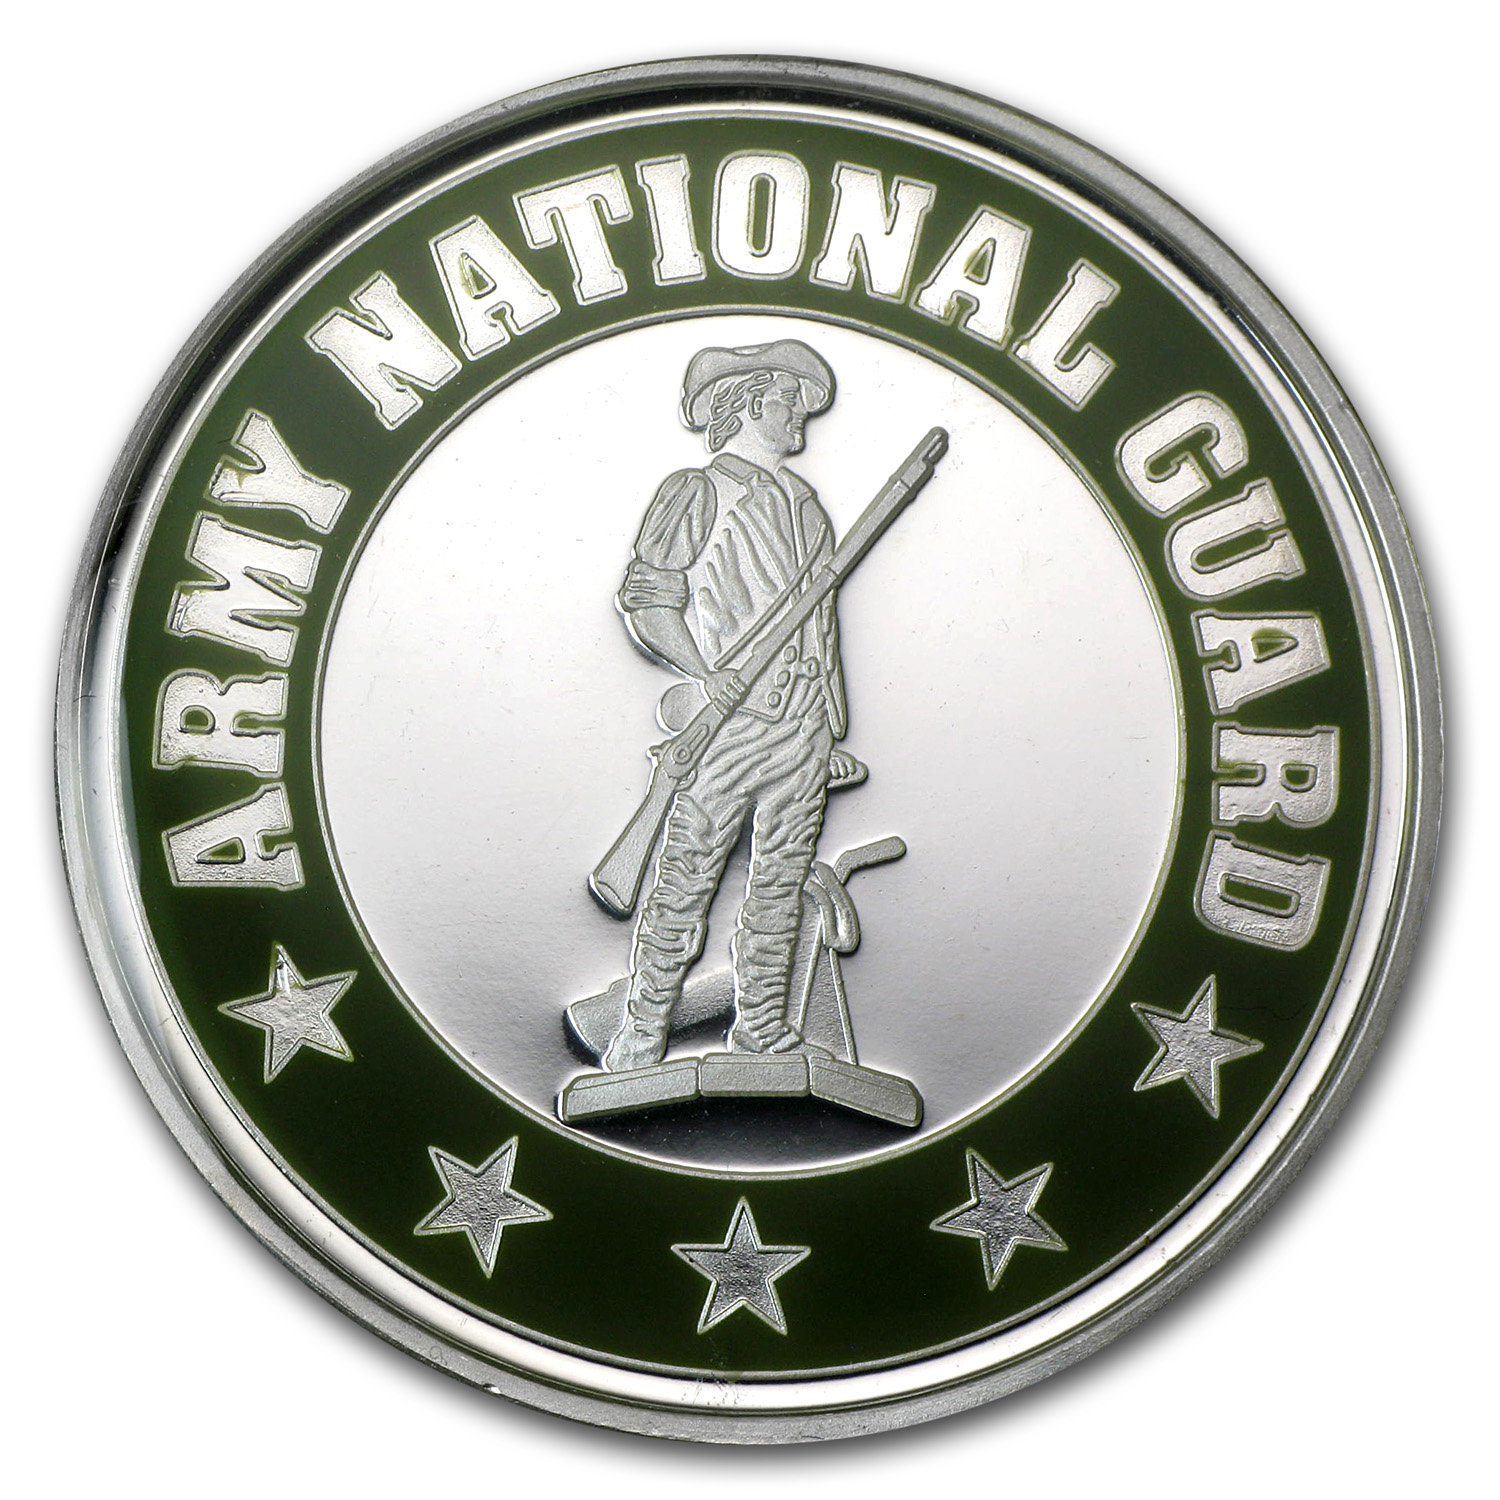 1 oz Silver Rnd - Army National Guard (Enameled, w/Box & Capsule)